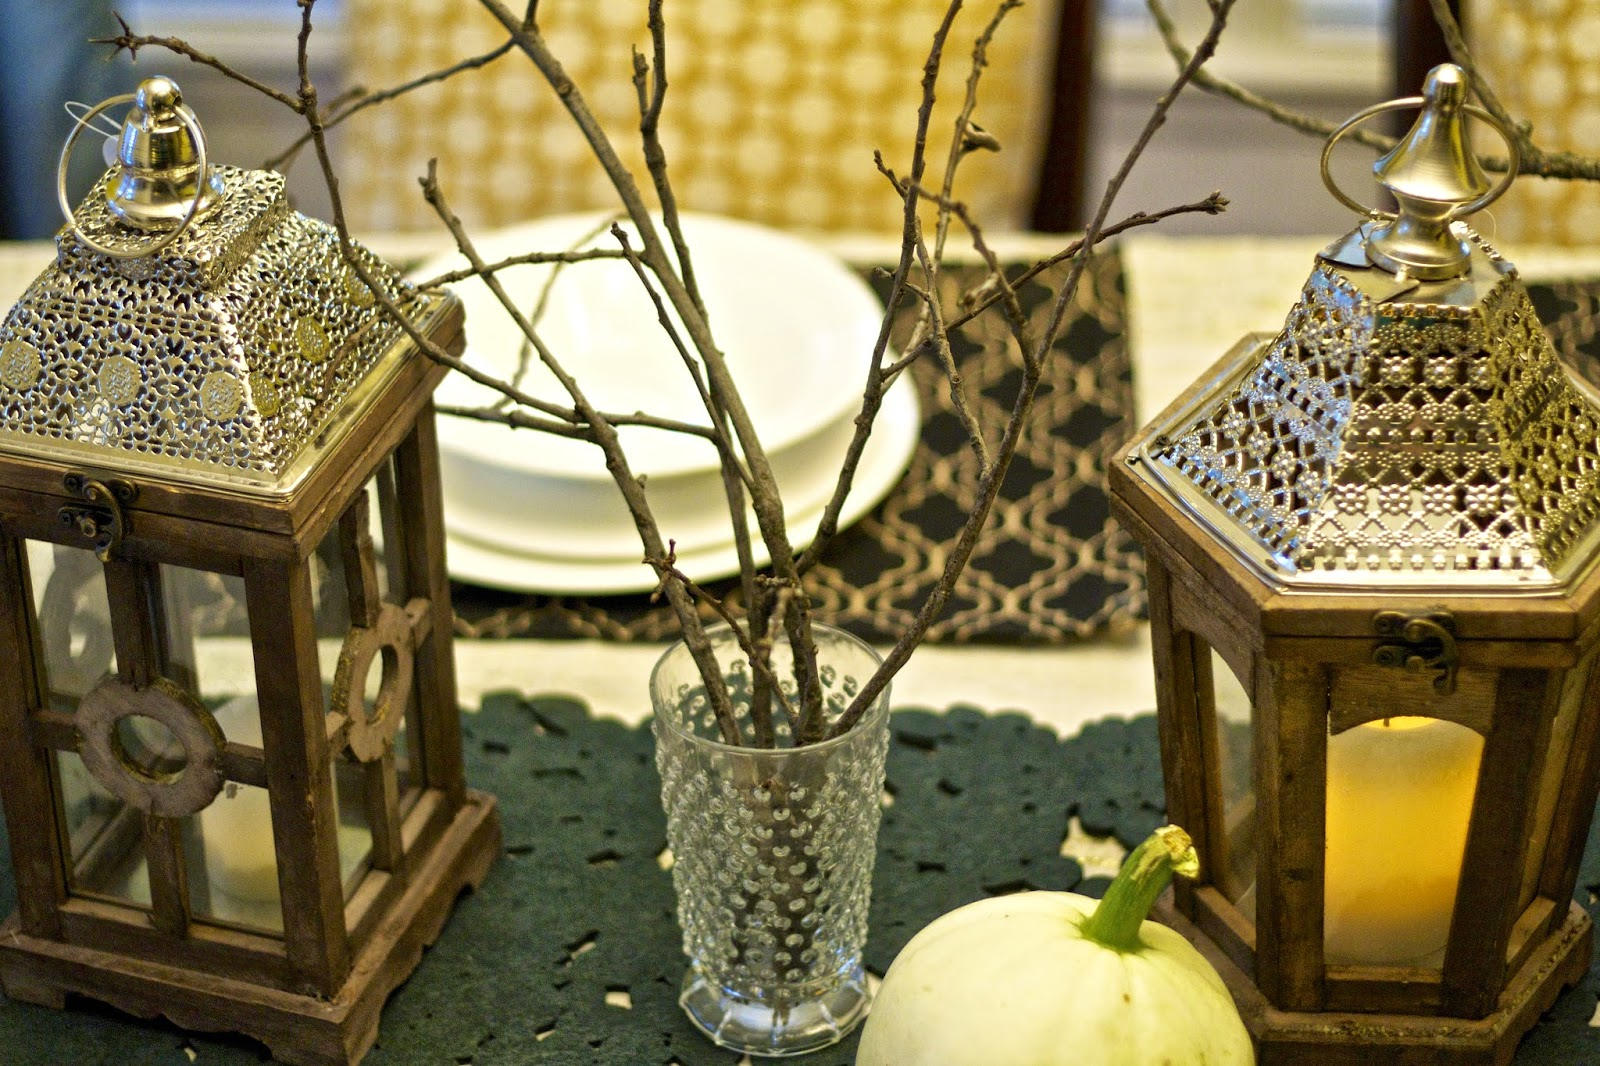 How Are You Making Little Or Big Updates To Your Home Decor Or Table Scapes For Fall Winter Holidays